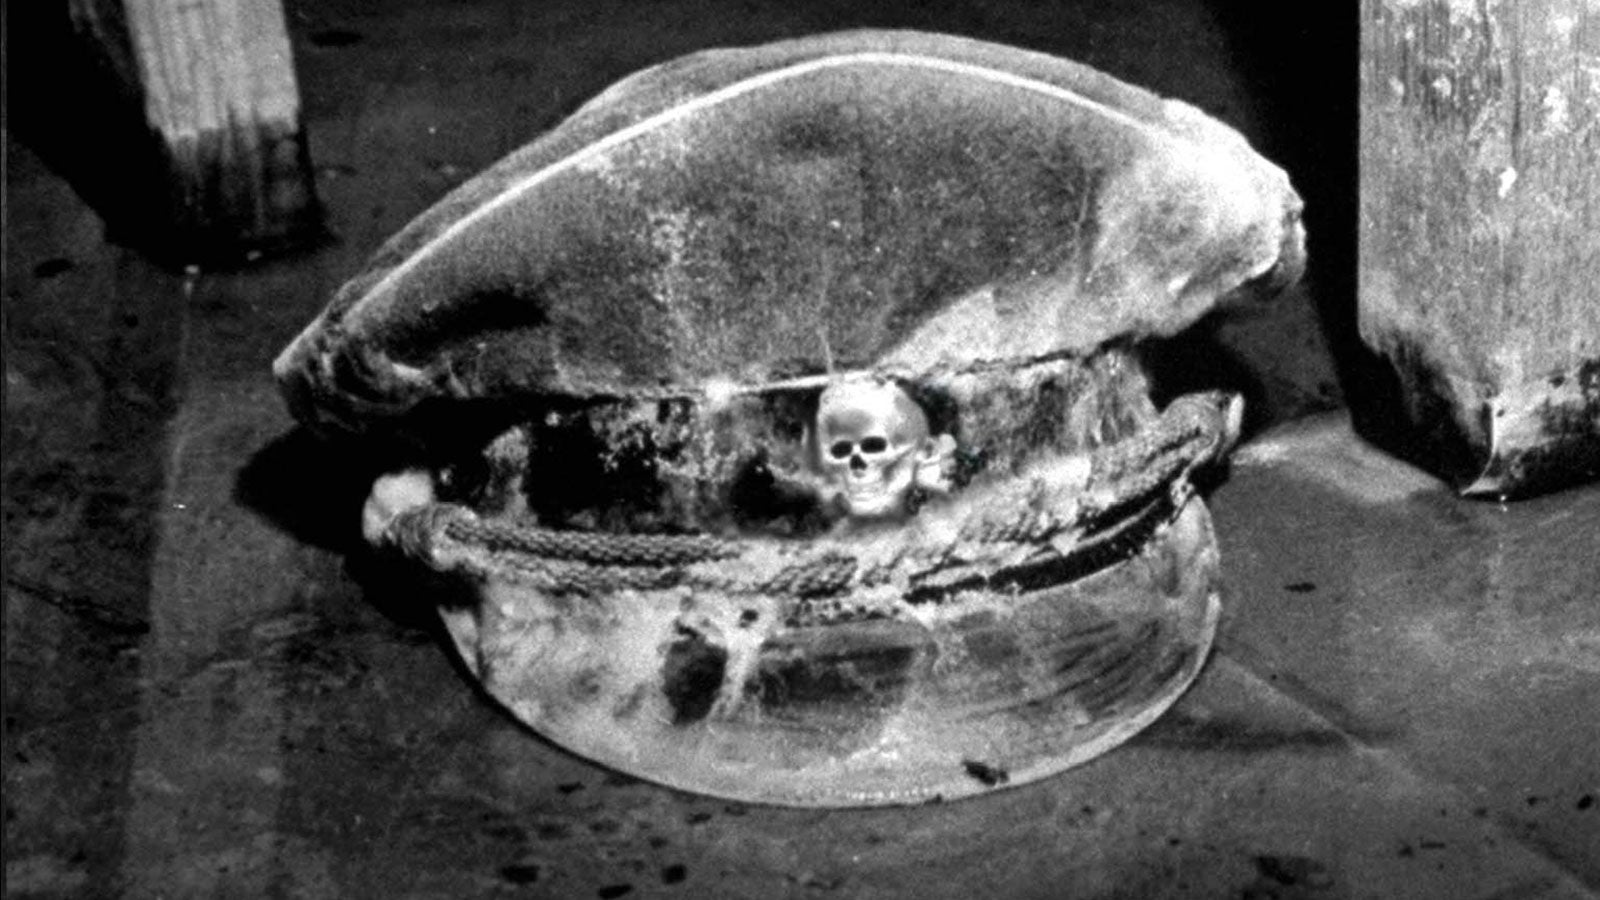 Black and white photograph of a SS uniform hat